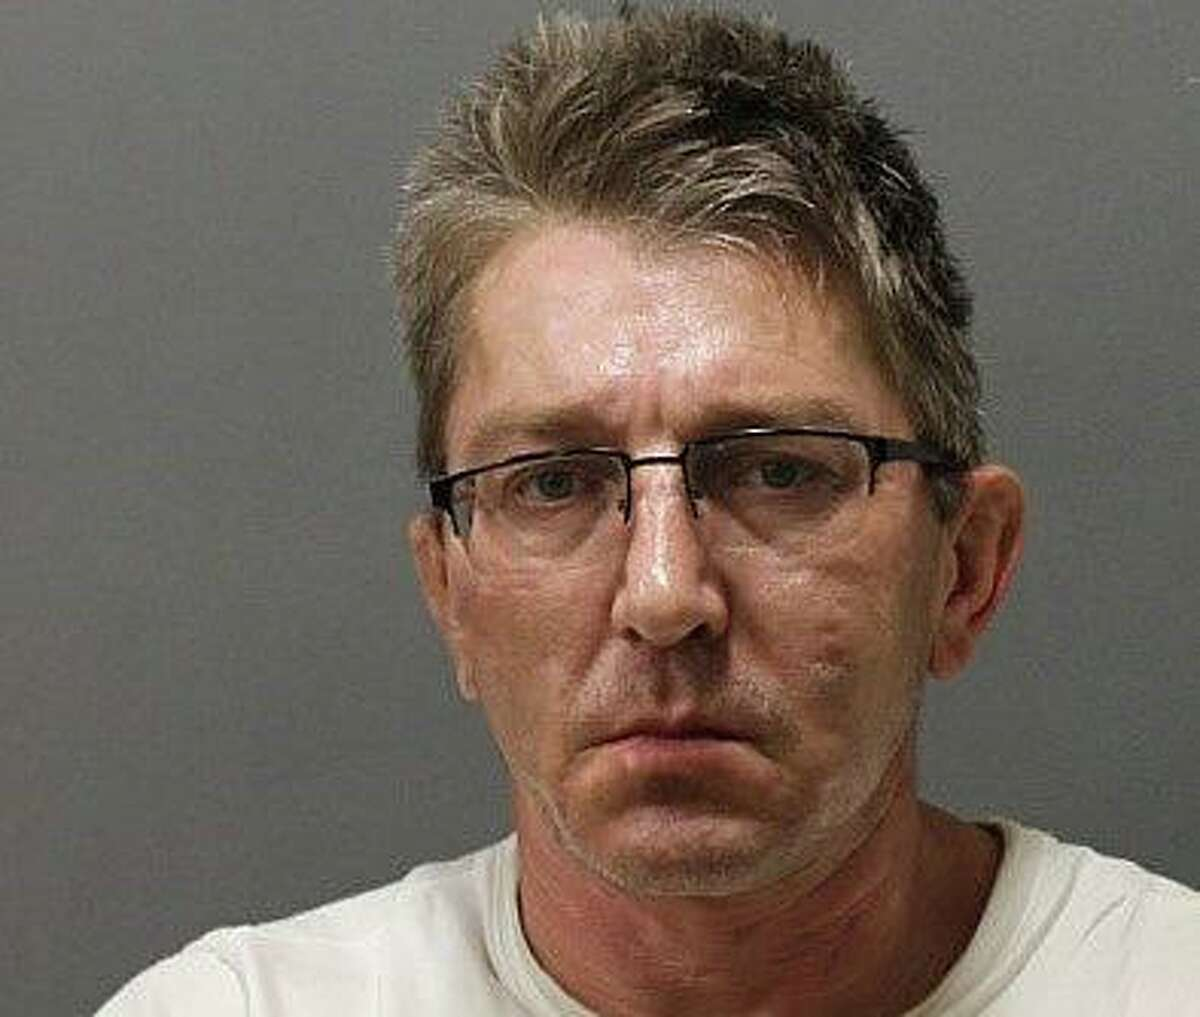 Eric Terwilliger, 40, of Central Village, Conn., was arrested early Wednesday, Sept. 8, 2021, in Plainfield.